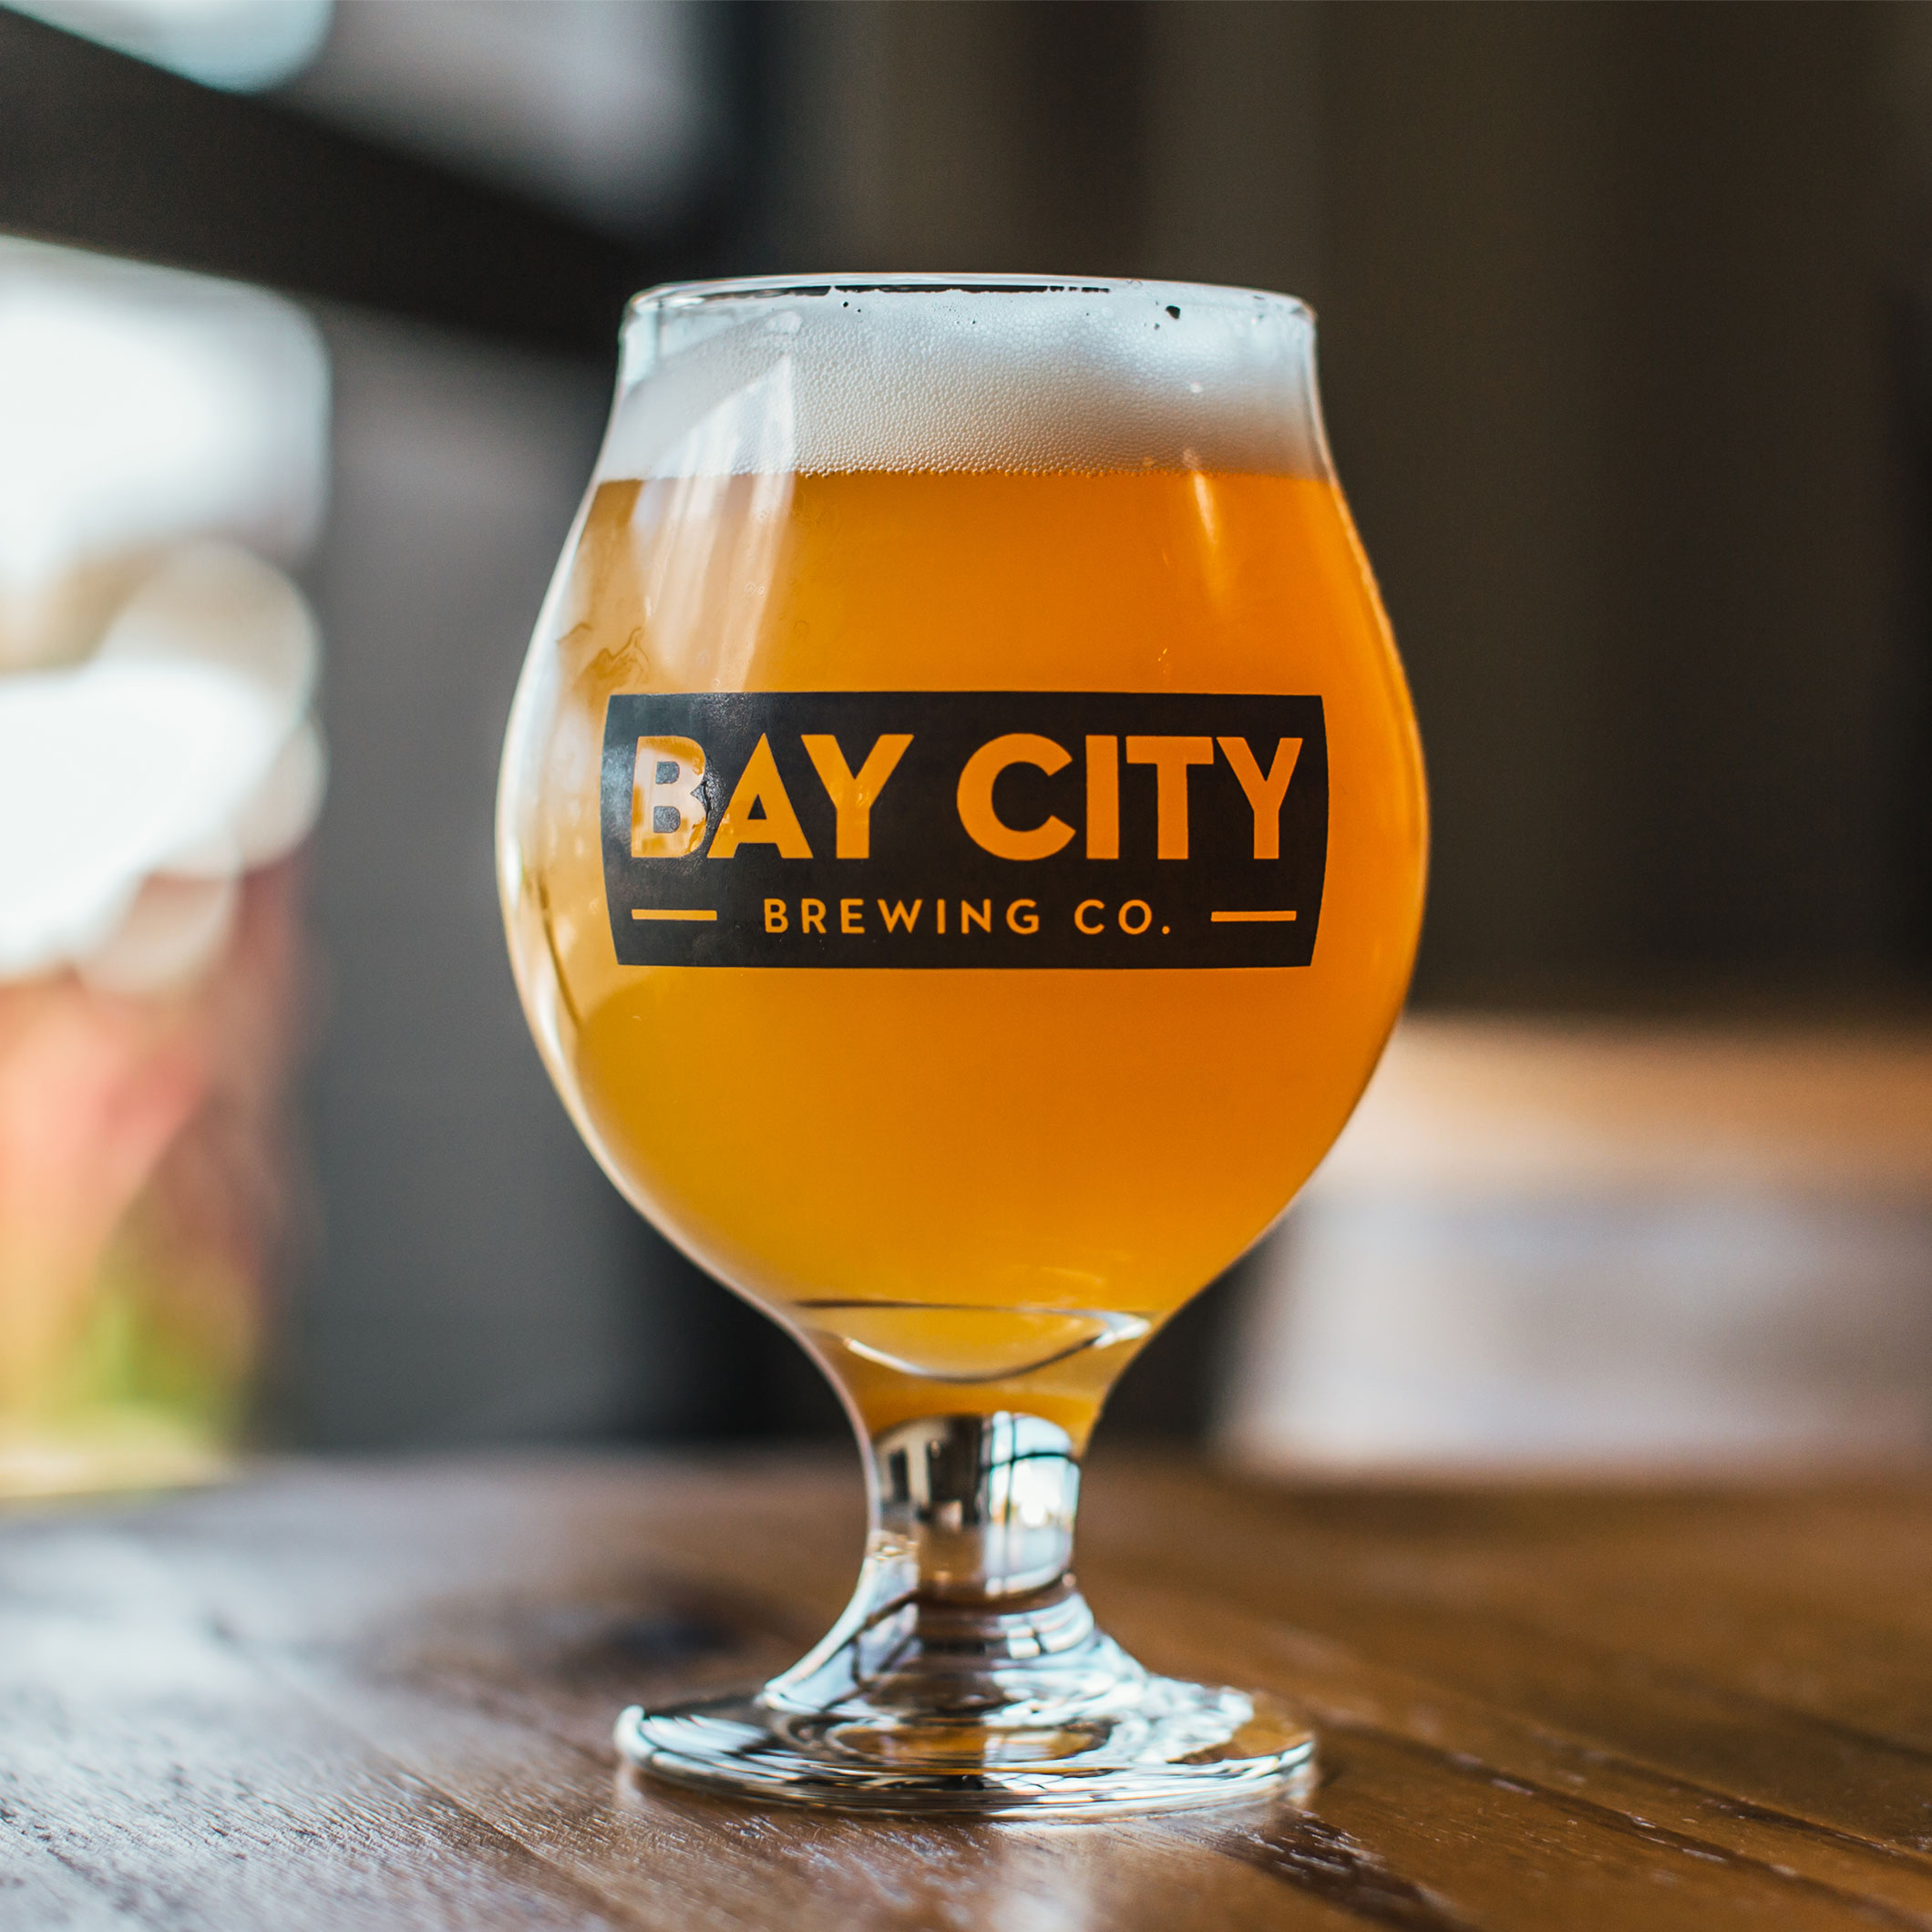 https://baycitybrewingco.com/wp-content/uploads/2019/03/bay_city_jucci_gang_glass_2x.jpg